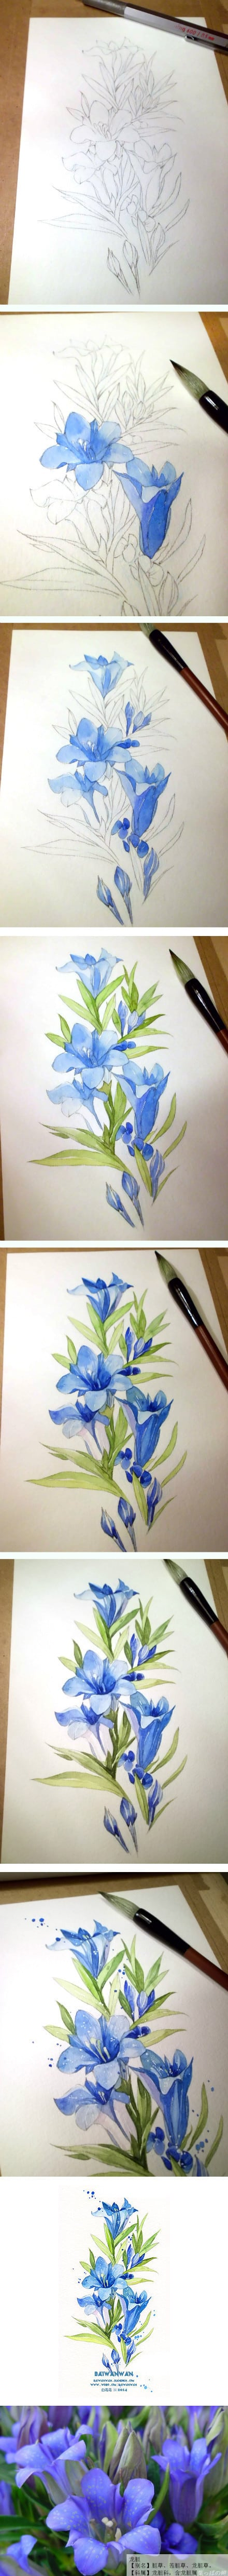 3. BLUE TONES REQUIRE DELICATE WHITE INSERTIONS TO SMOOTH DOWN FOLDS AND ADD LIGHT TO THE IMAGERY